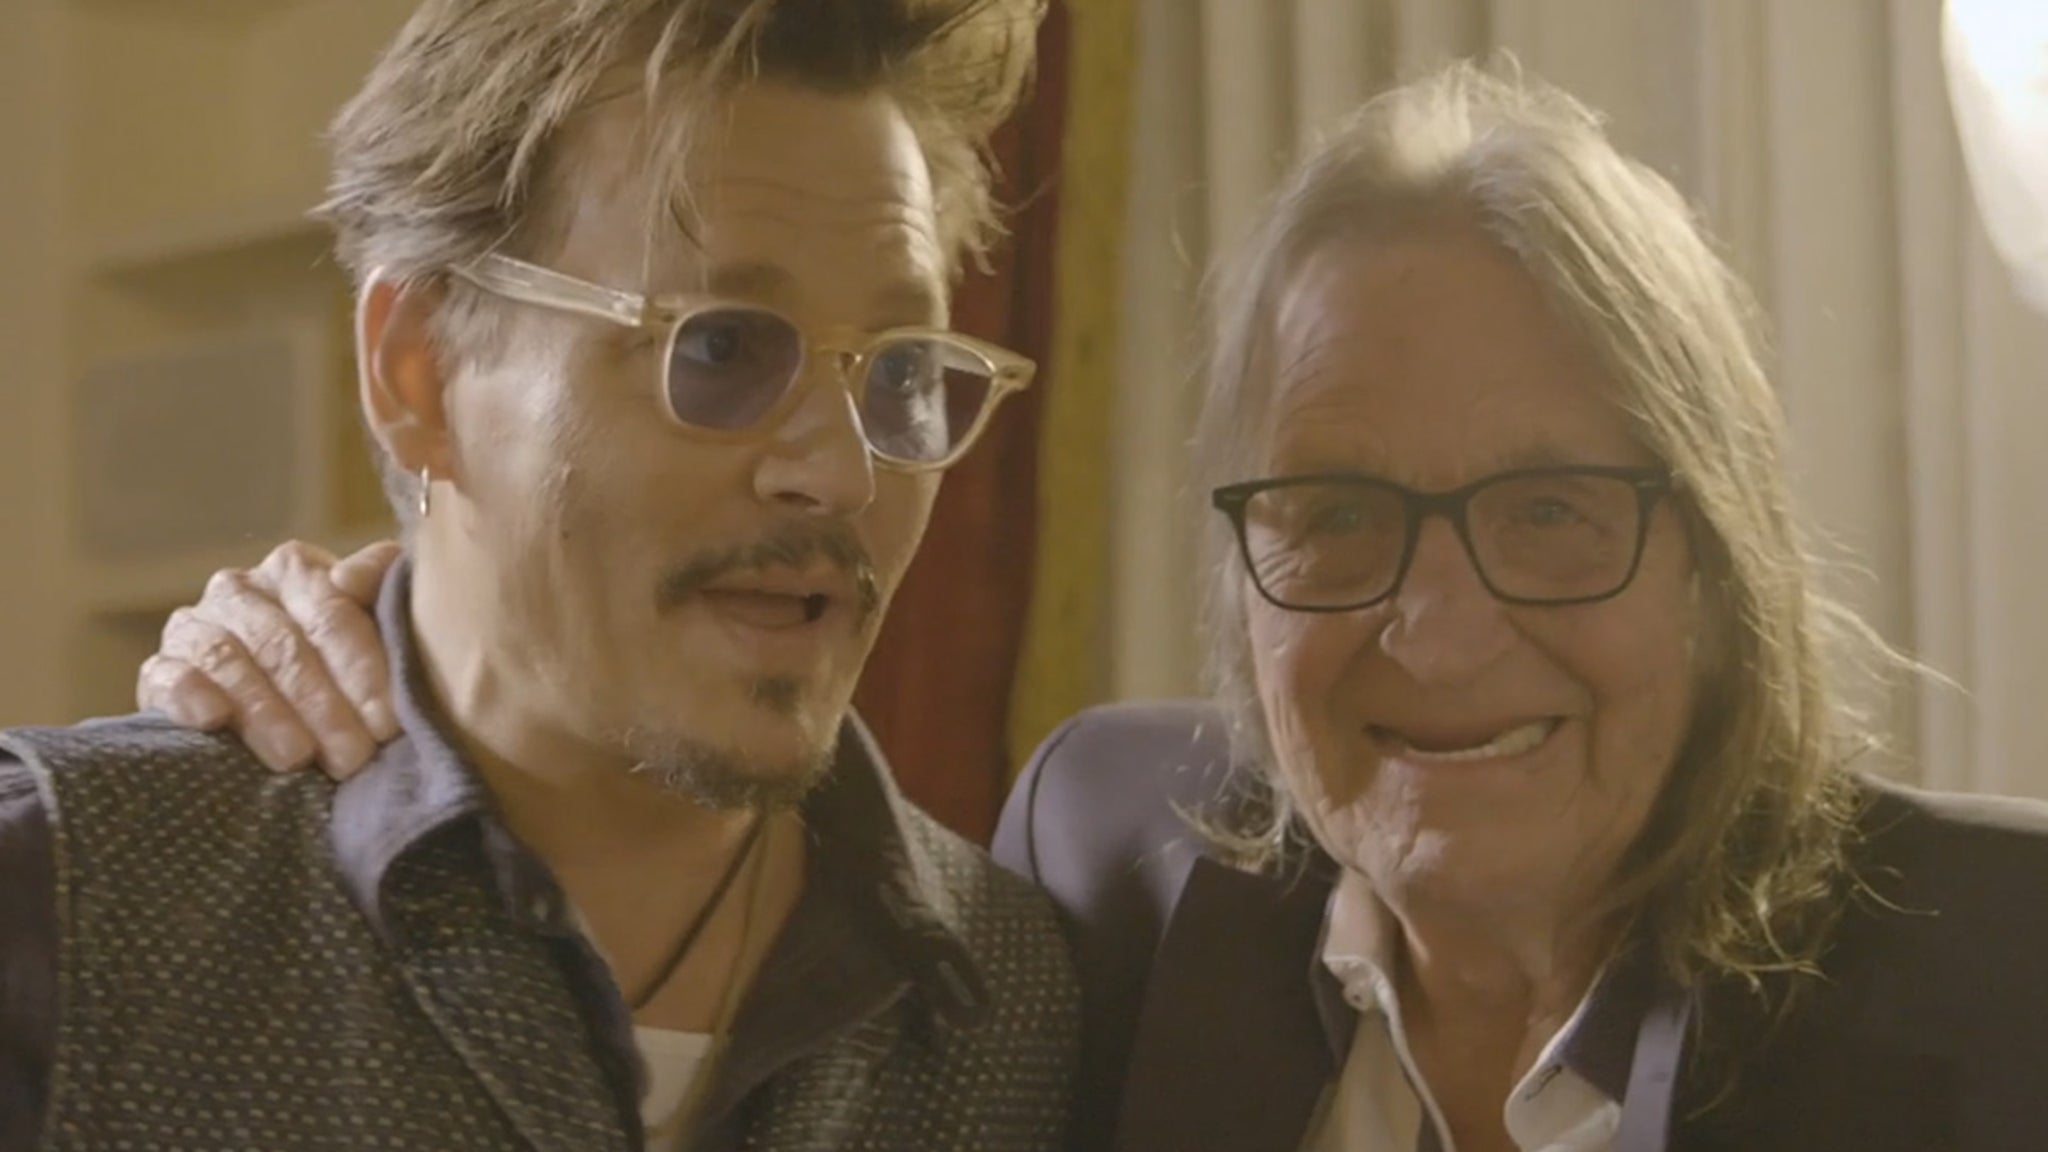 Johnny Depp Gushes Over George Jung in Docuseries - TMZ